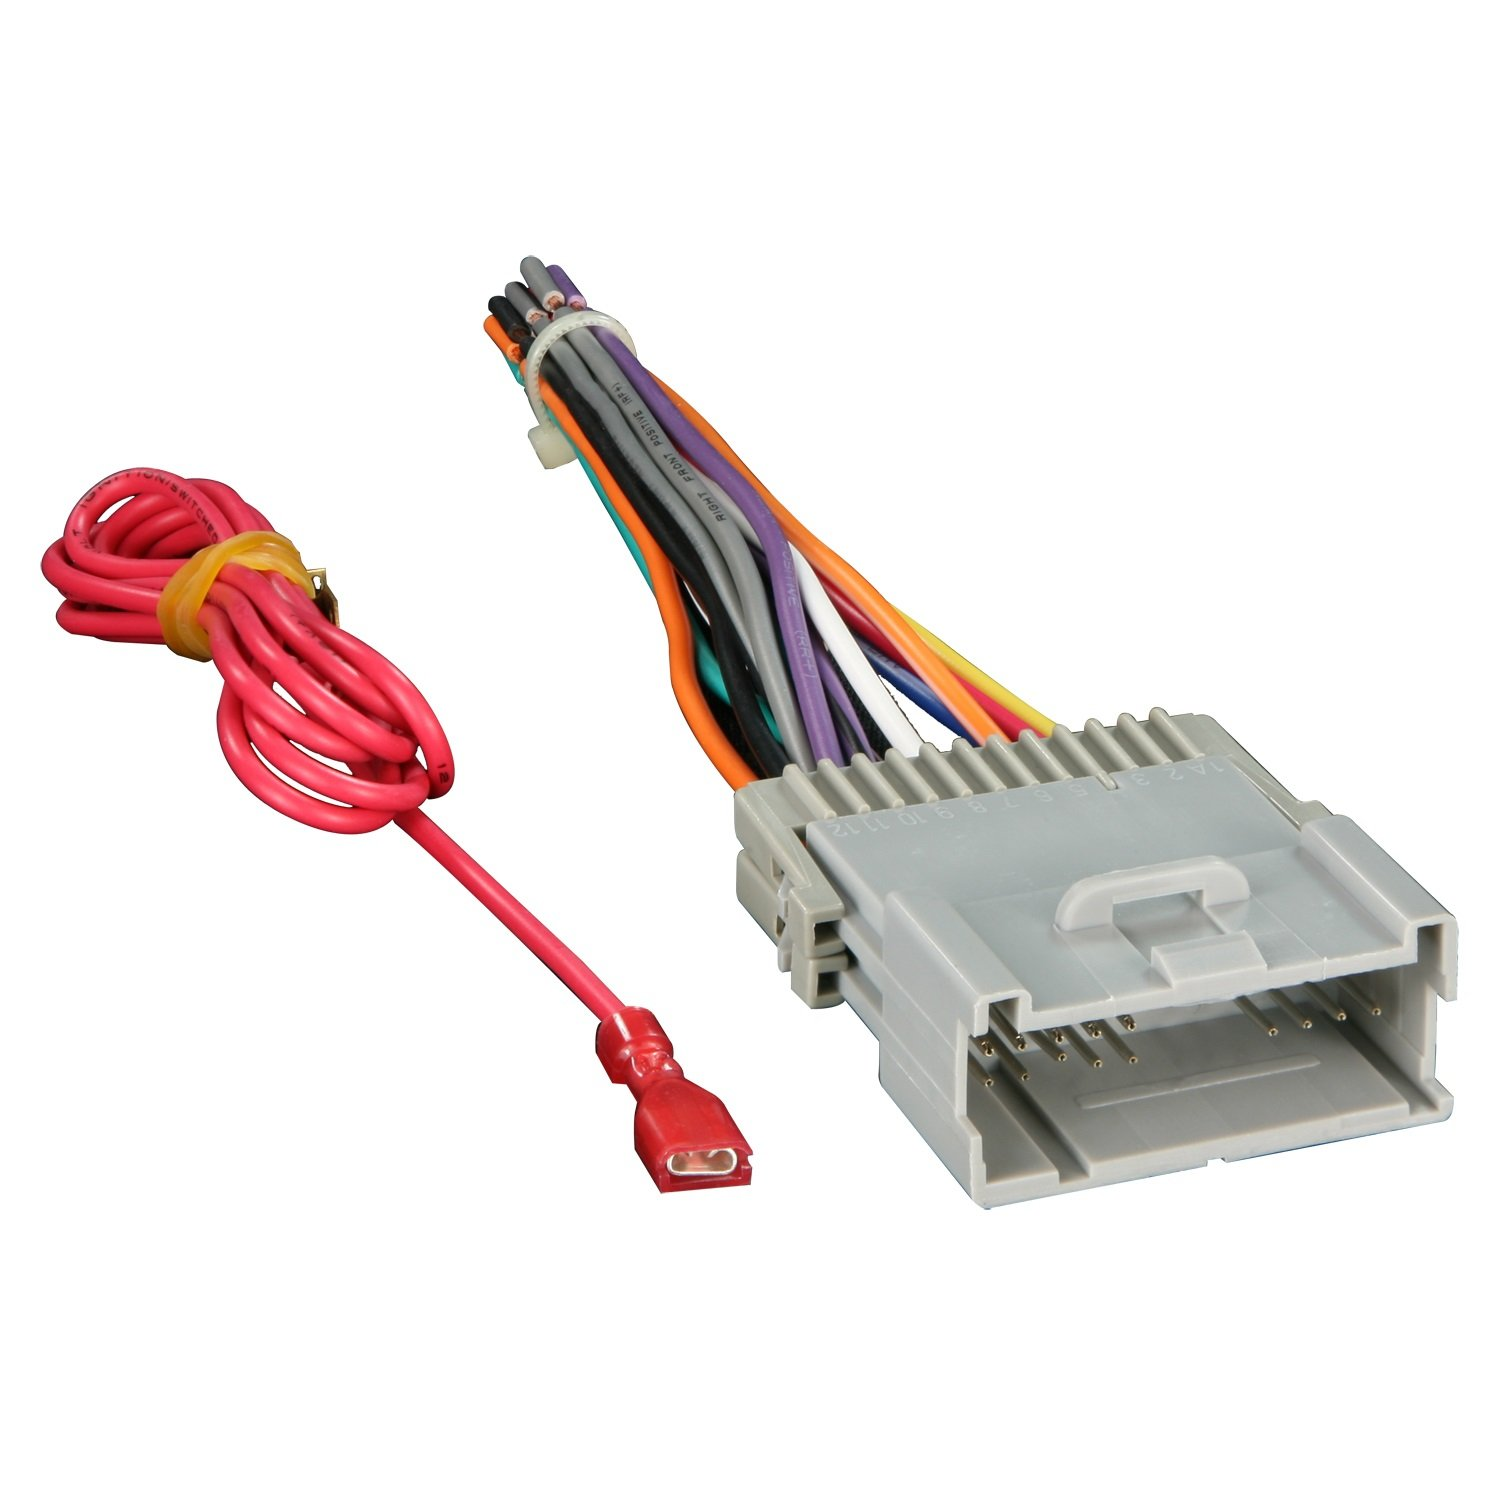 61eewxp9orL._SL1500_ amazon com metra 70 2003 radio wiring harness for gm 98 08 1999 GMC at readyjetset.co